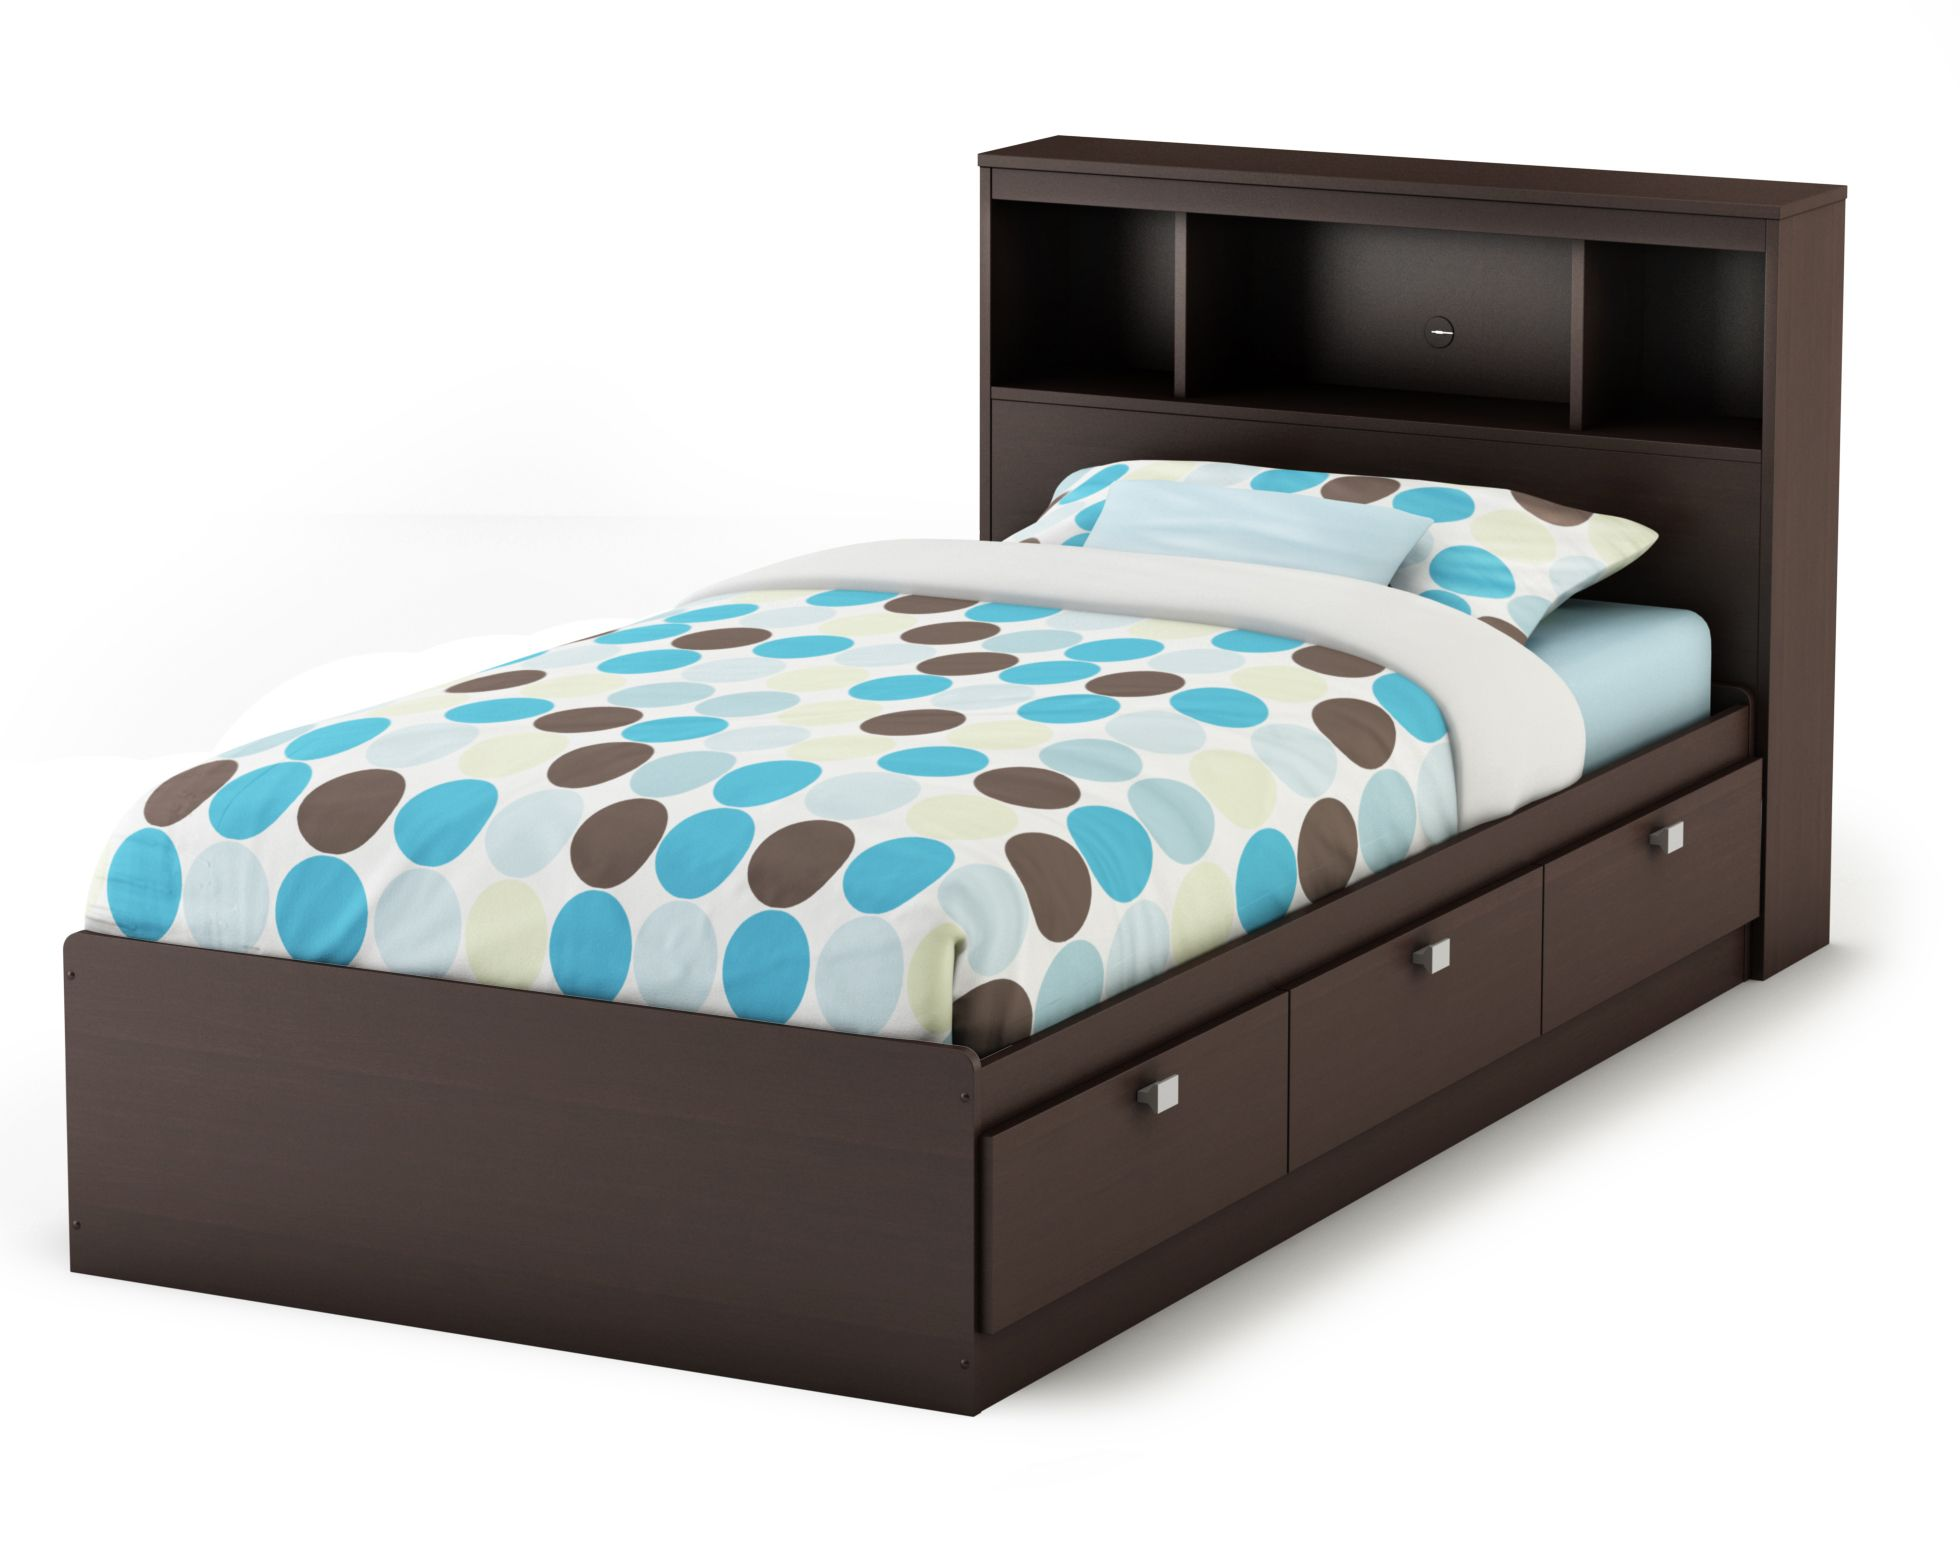 Bedroom Stunning Espresso Twin Size Bed Frame With Headboard And